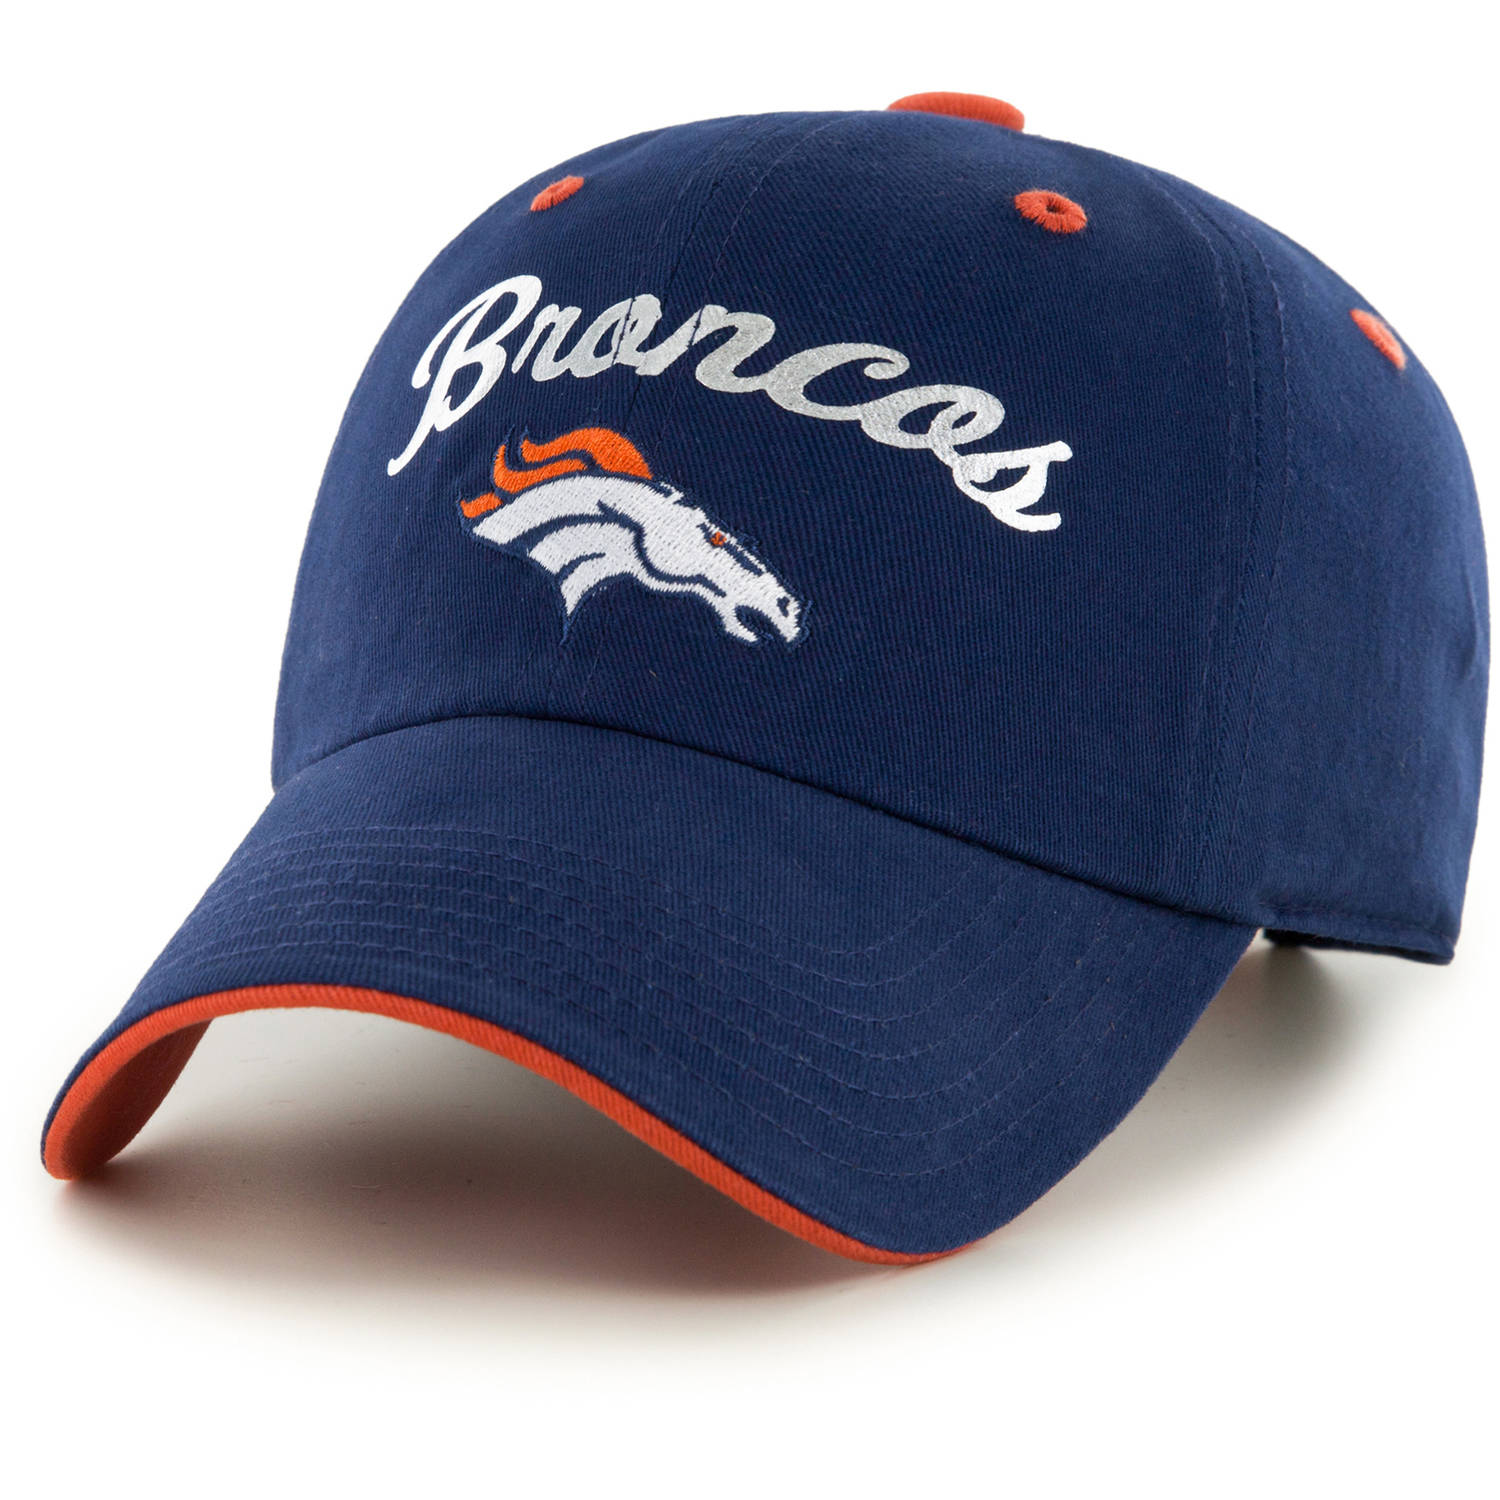 NFL Denver Broncos Mass Giselle Cap Fan Favorite by Overstock